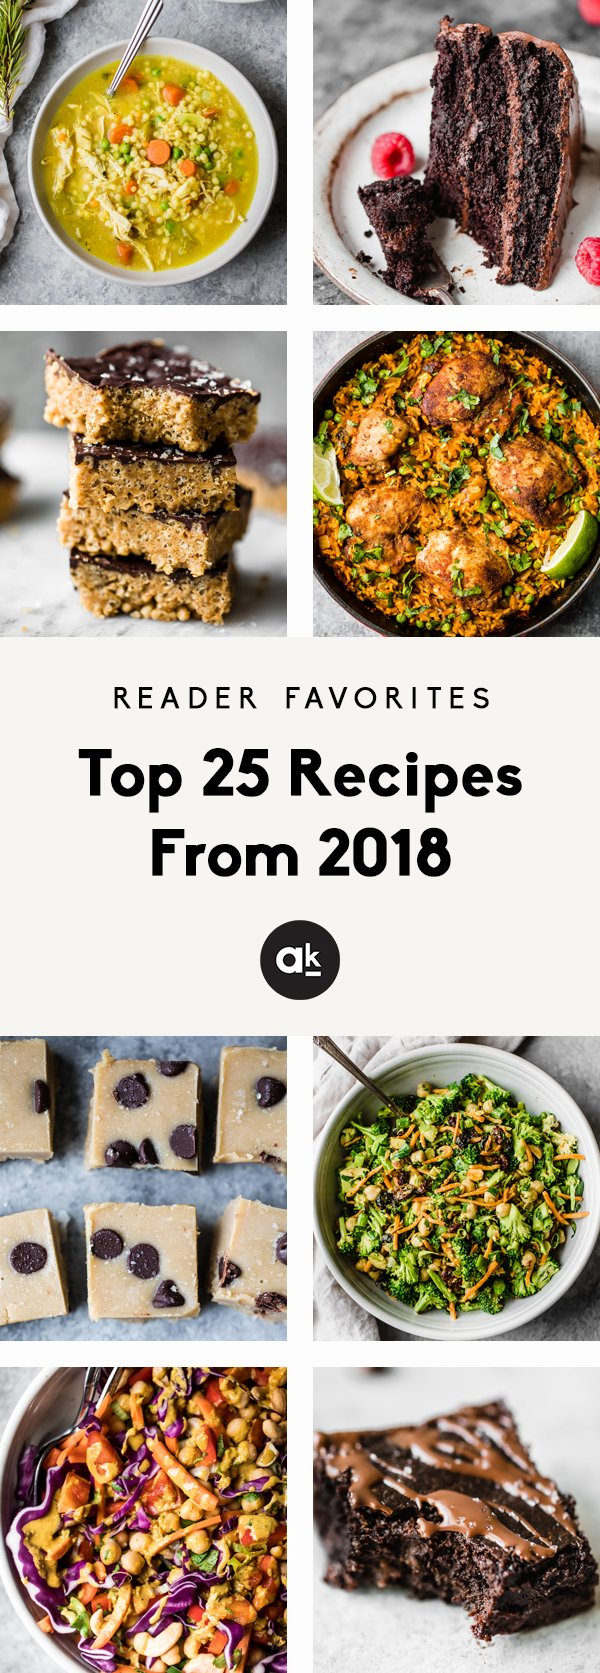 The top 25 recipes from Ambitious Kitchen in 2018! These 25 incredible recipes are the most made, clicked on, and shared from AK readers all year long. From muffins and salads to the best paleo chocolate cake, these recipes are ones to make again and again.